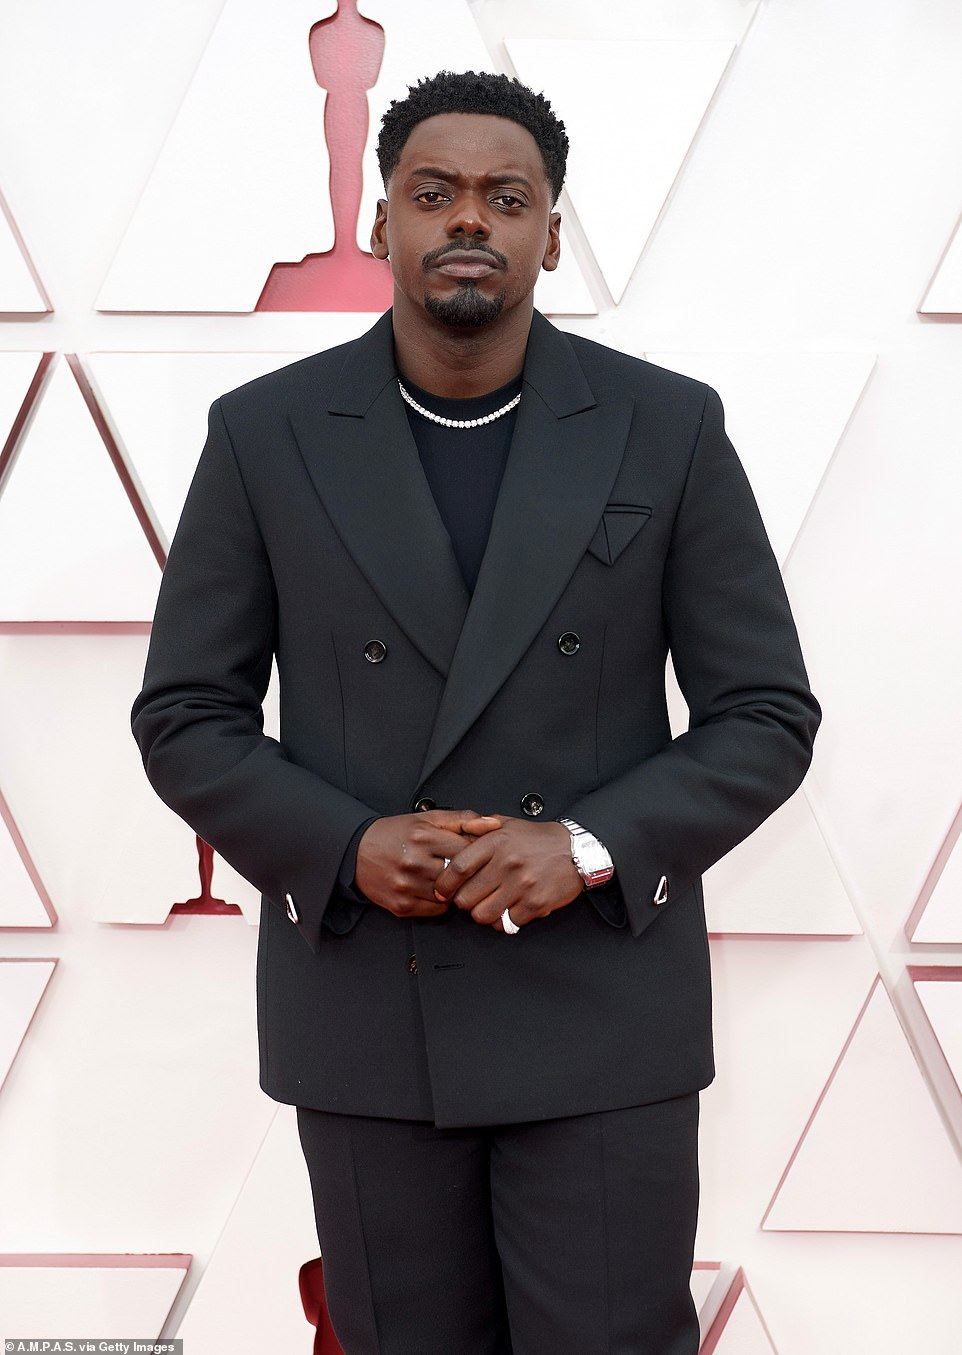 'I'm gonna avoid my phone for a bit, mate, trust me, going to avoid my phone for a bit. I think my mom's not going to be very happy. But she's gonna be cool, she's gonna be cool, she's gonna be cool,' Kaluuya said when asked if he'd spoken to his mom after the win